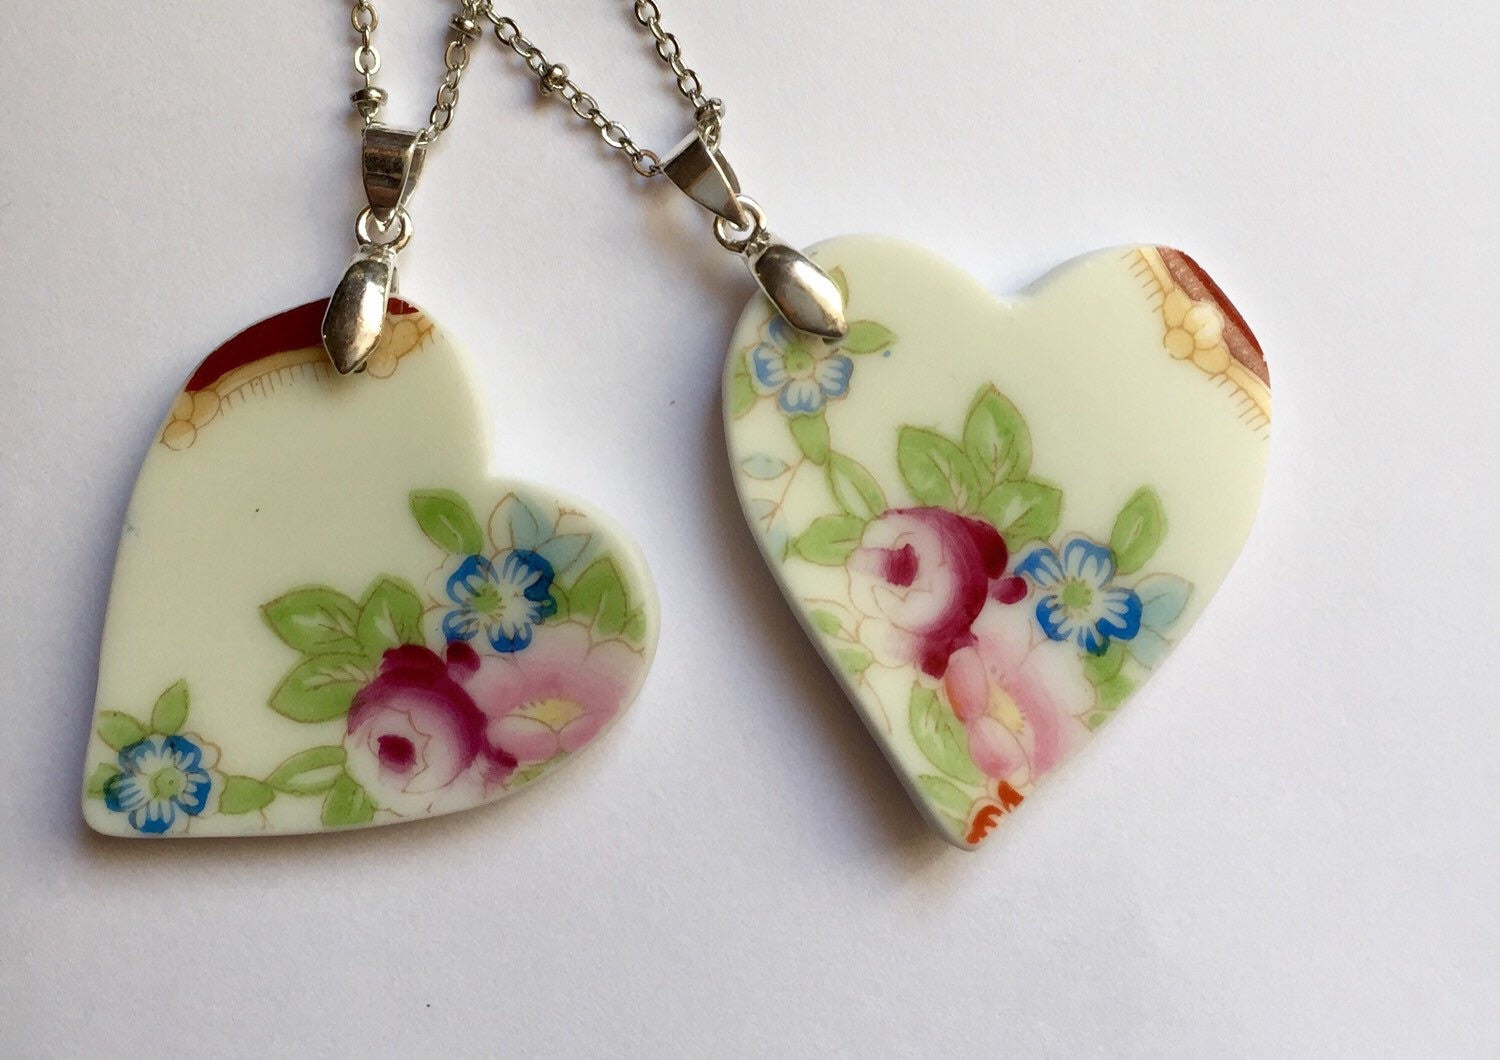 Broken china jewelry - Heart Bridal Necklace Set close up of 2. image 1